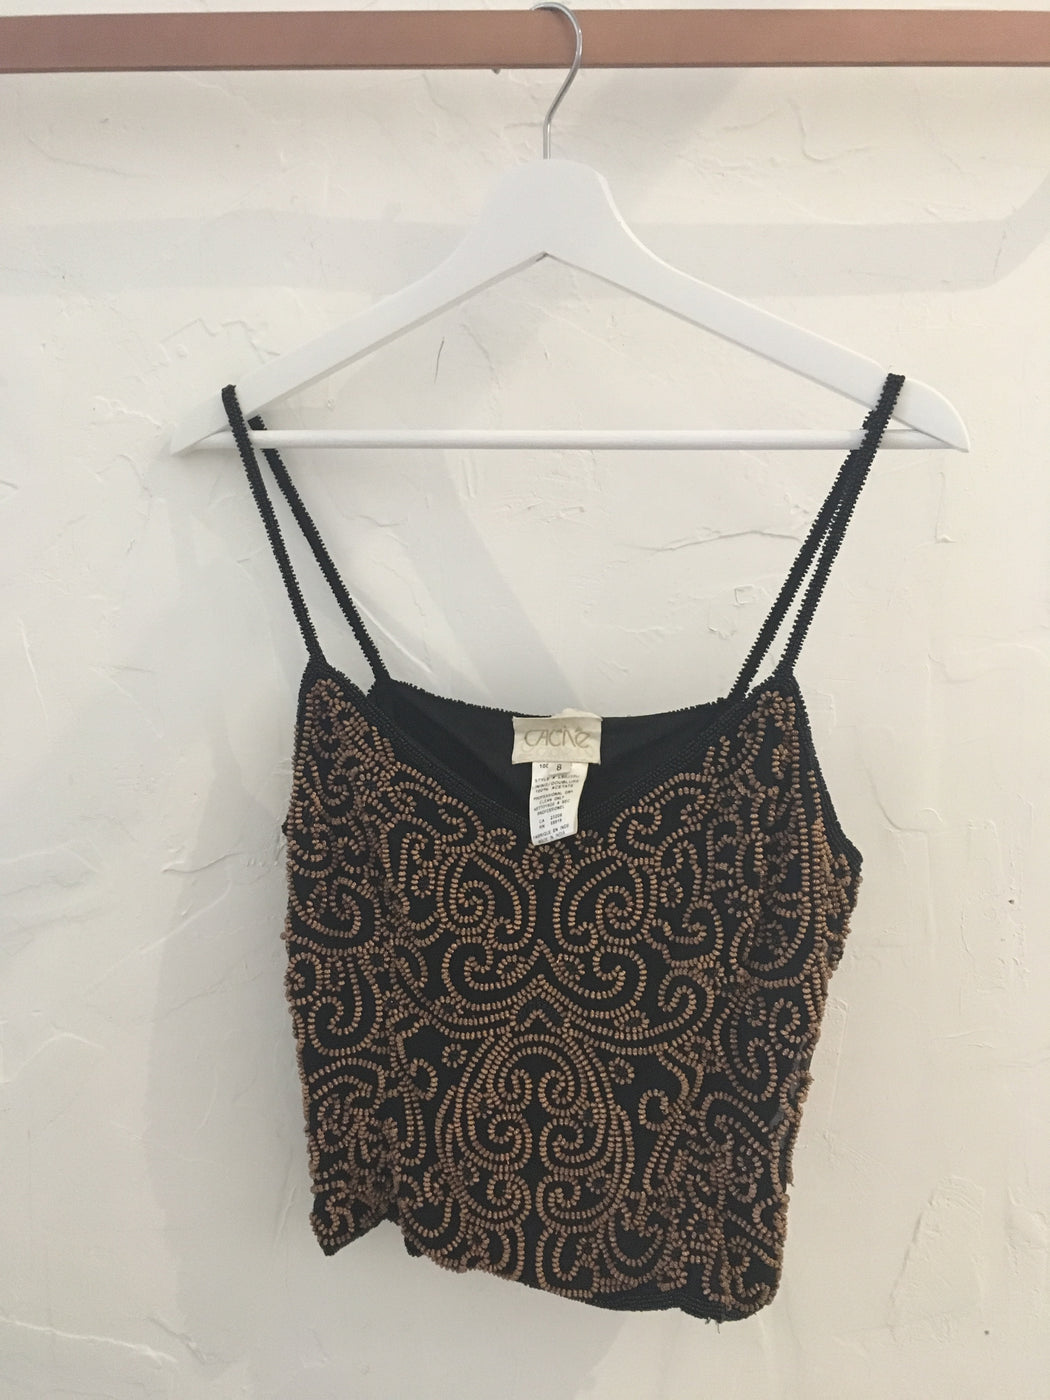 90s Caché Beaded Paisley Pattern Silk Spaghetti Strap Tank Top - Size 8, Gingerly Witty - Gingerly Witty